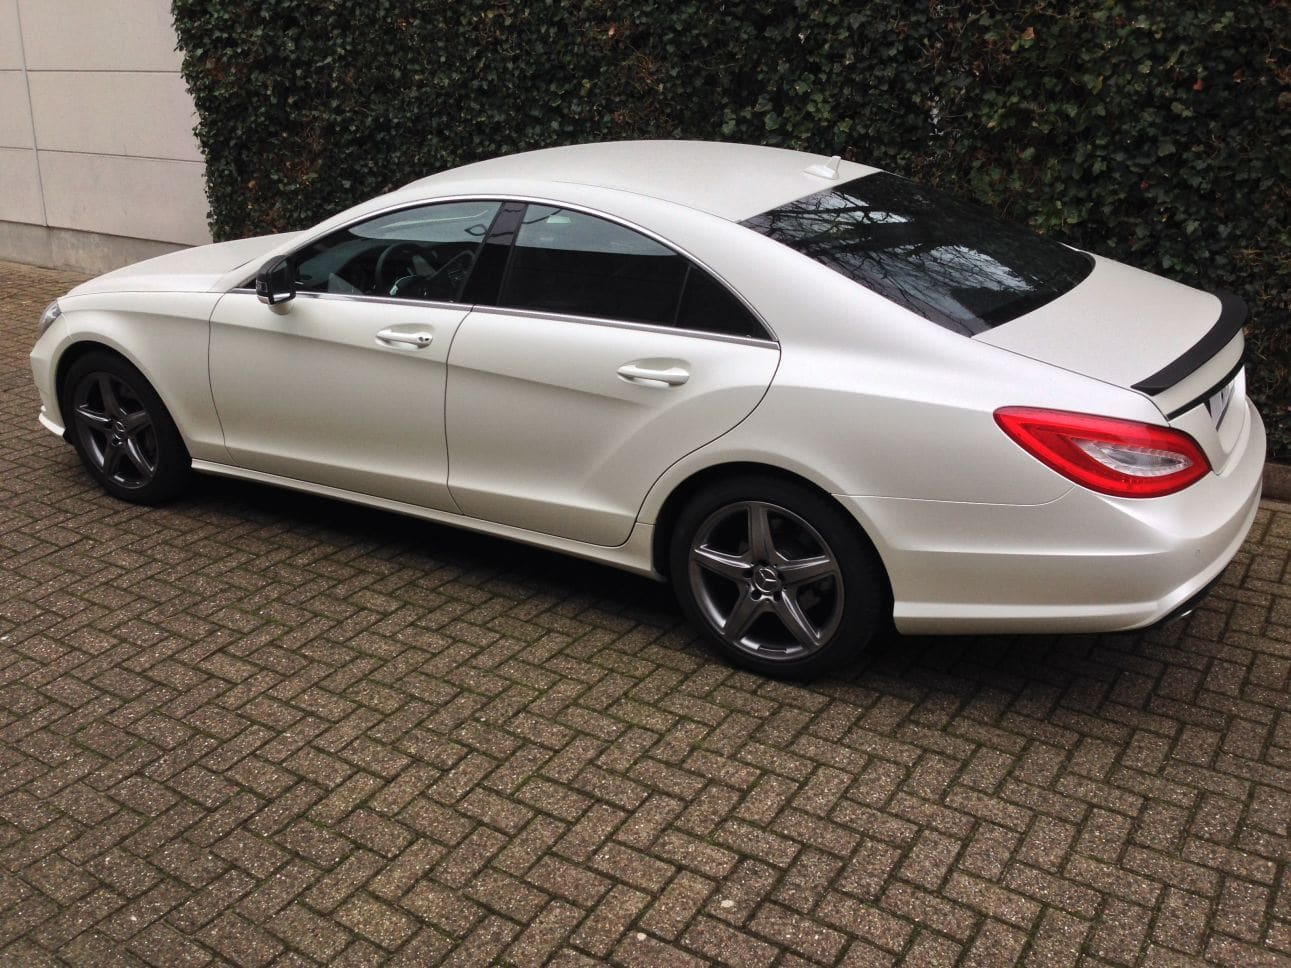 Mercedes CLS met White Satin Pearl Wrap, Carwrapping door Wrapmyride.nu Foto-nr:6217, ©2021